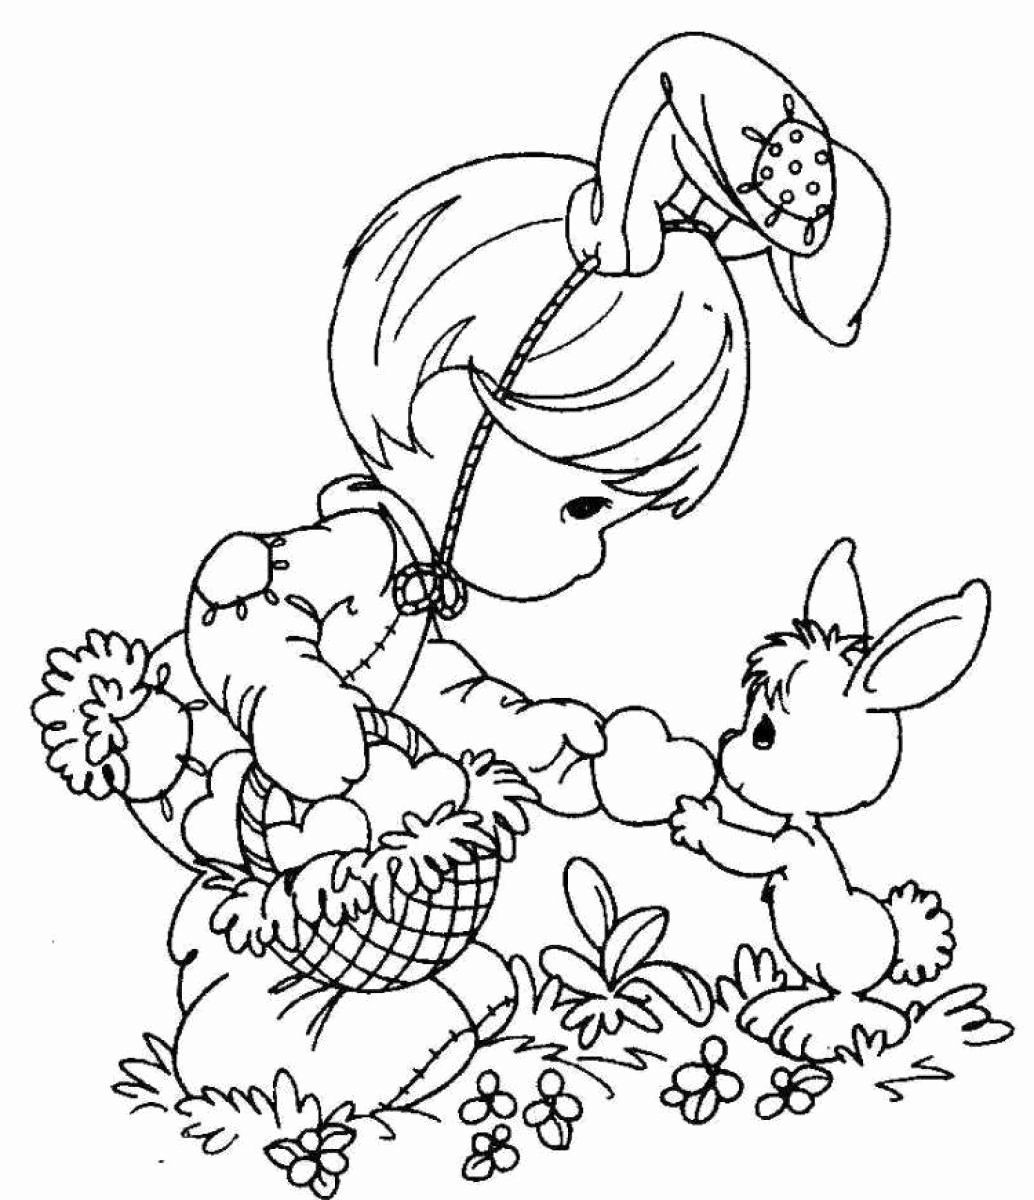 Printable Easter Coloring Page New Coloring Pages Happy Easter Coloring Pages H Precious Moments Coloring Pages Free Easter Coloring Pages Bunny Coloring Pages